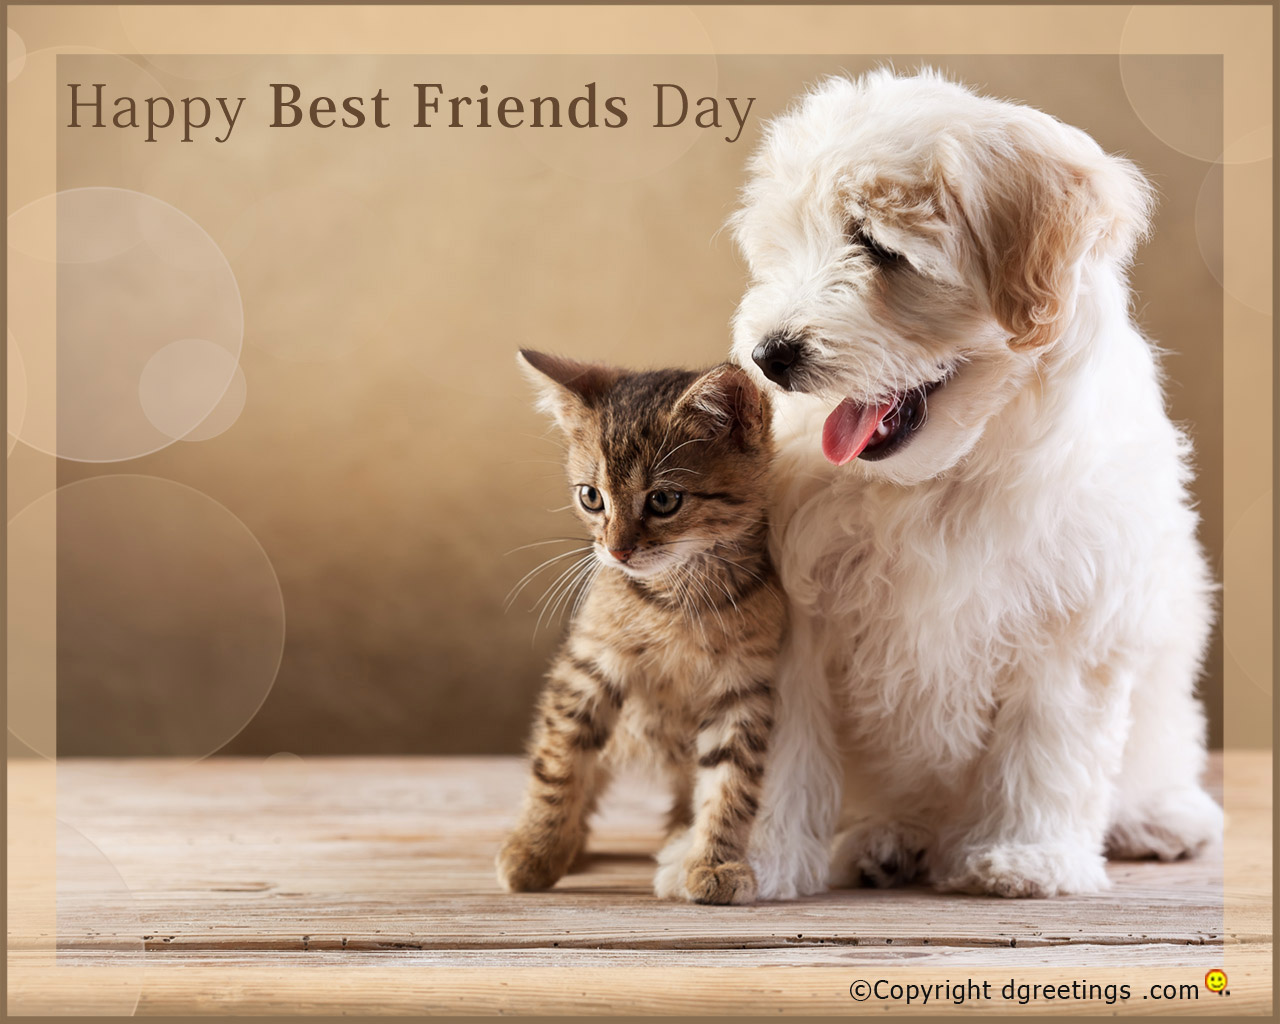 Best Friend day wallpapers of different sizes wallpapersdgreetings 1280x1024